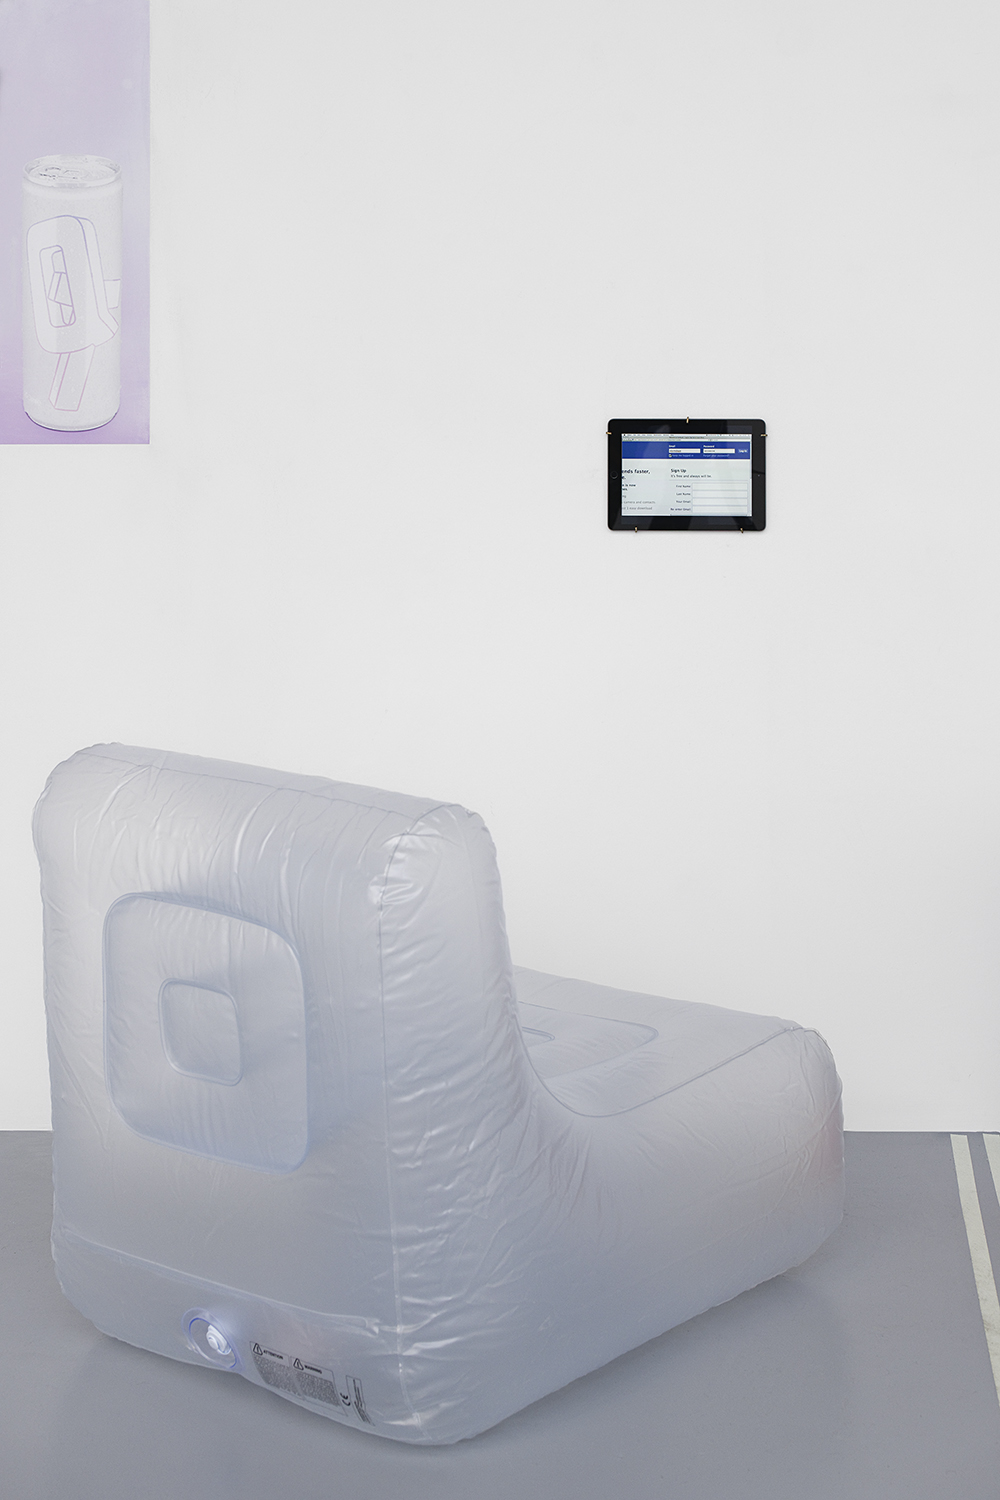 Dorm Daze, Ed Fornieles, 2011, Vidéo 5'23 , dimension variable — Galerie Éric Hussenot, Paris